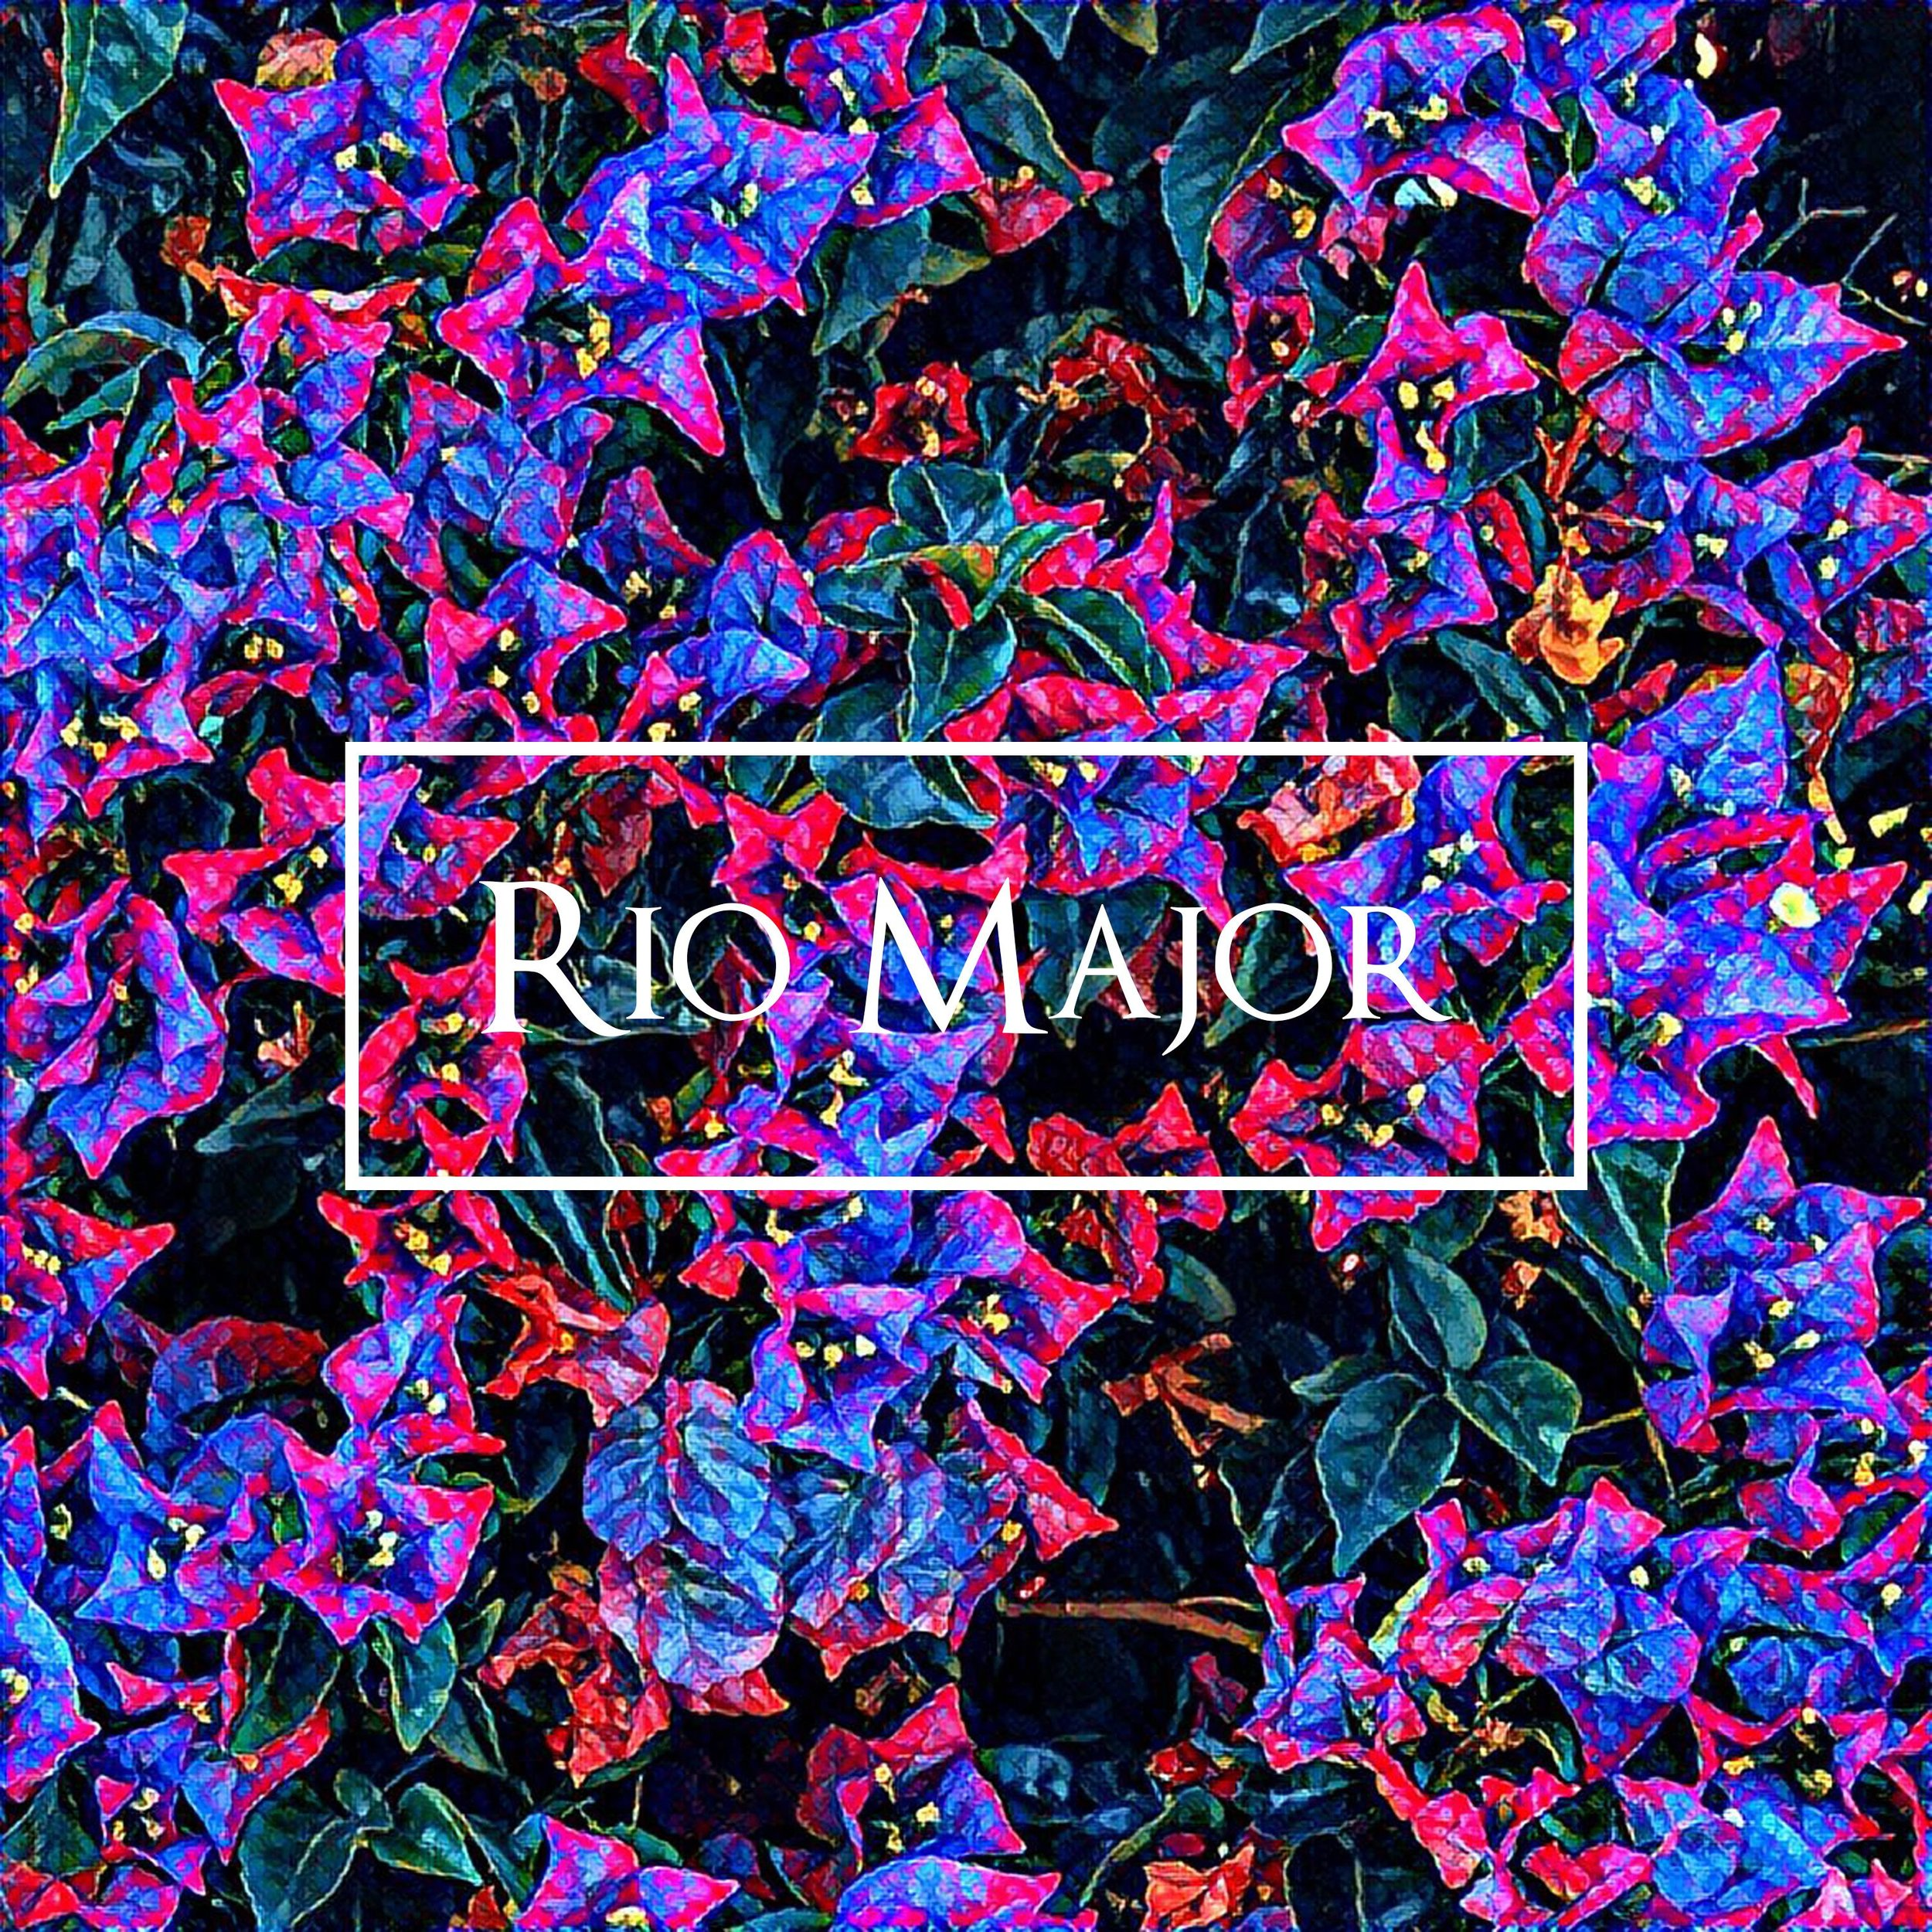 Rio Major - Rio Major EP - Released September 2017